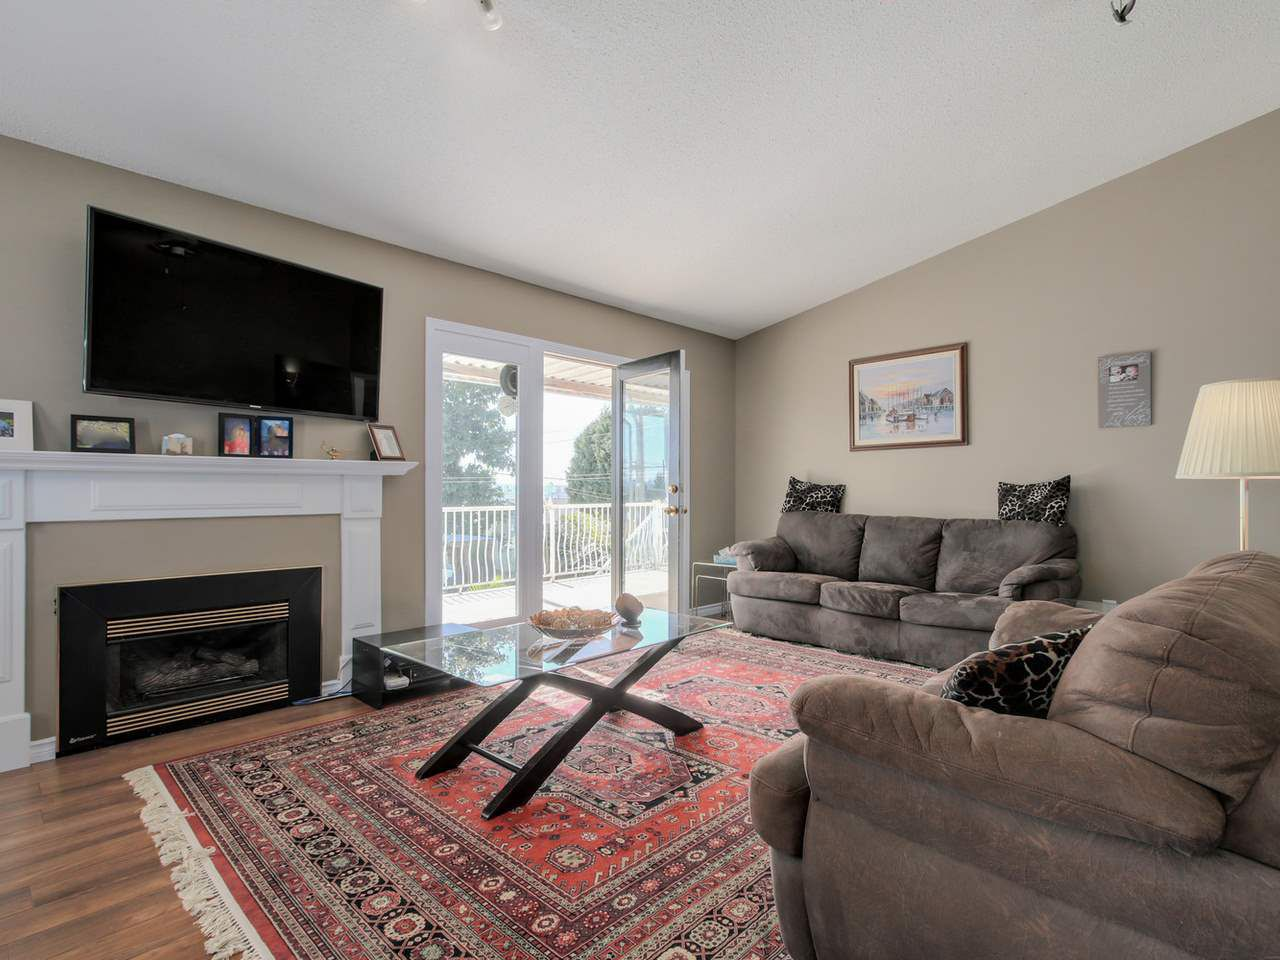 Photo 4: Photos: 449 E 5TH Street in North Vancouver: Lower Lonsdale House for sale : MLS®# R2056647